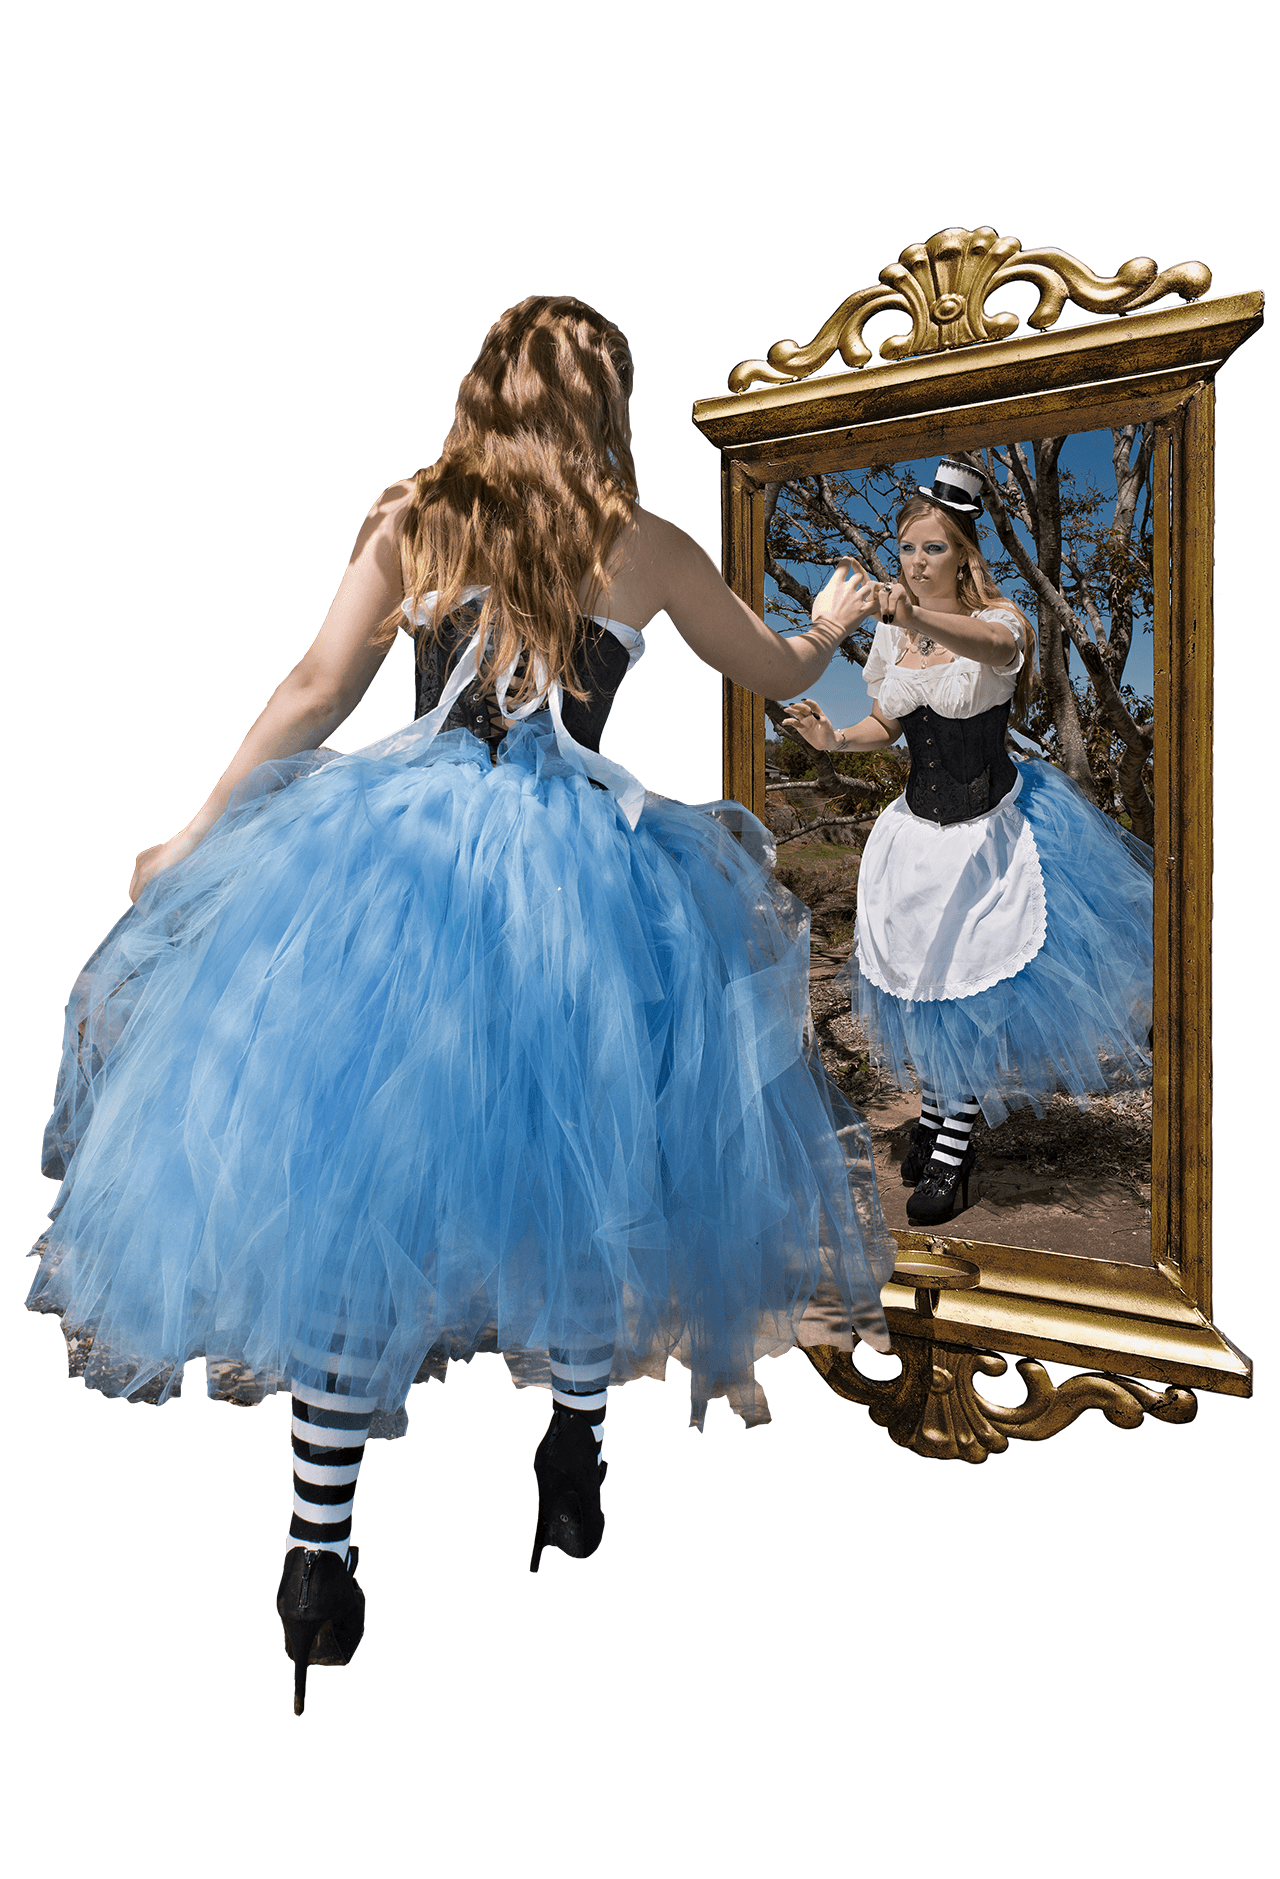 ThroughtheLookingGlass-sml.png